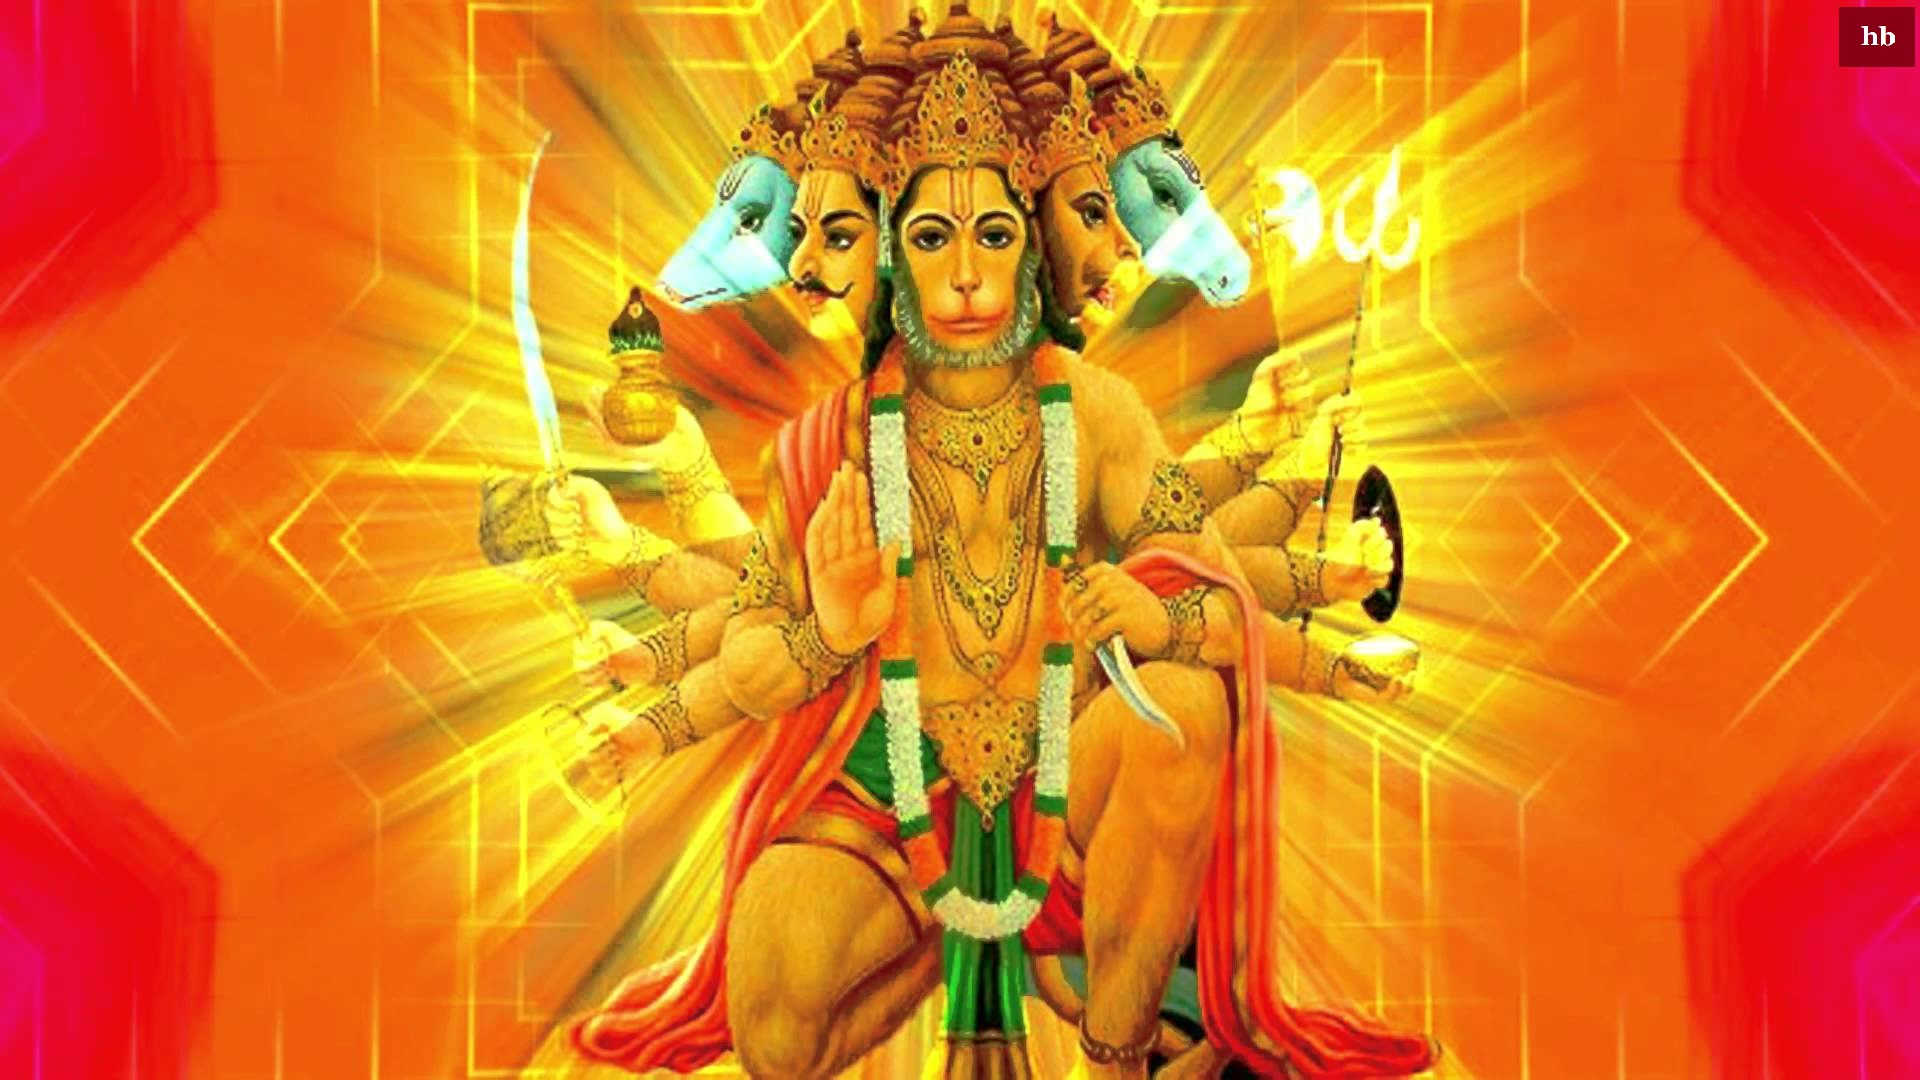 Panchmukhi Hanuman Wallpapers Panchmukhi Hanuman Images Panchmukhi Hanuman Photos Panchmukhi Hanuman Hd Wallpaper